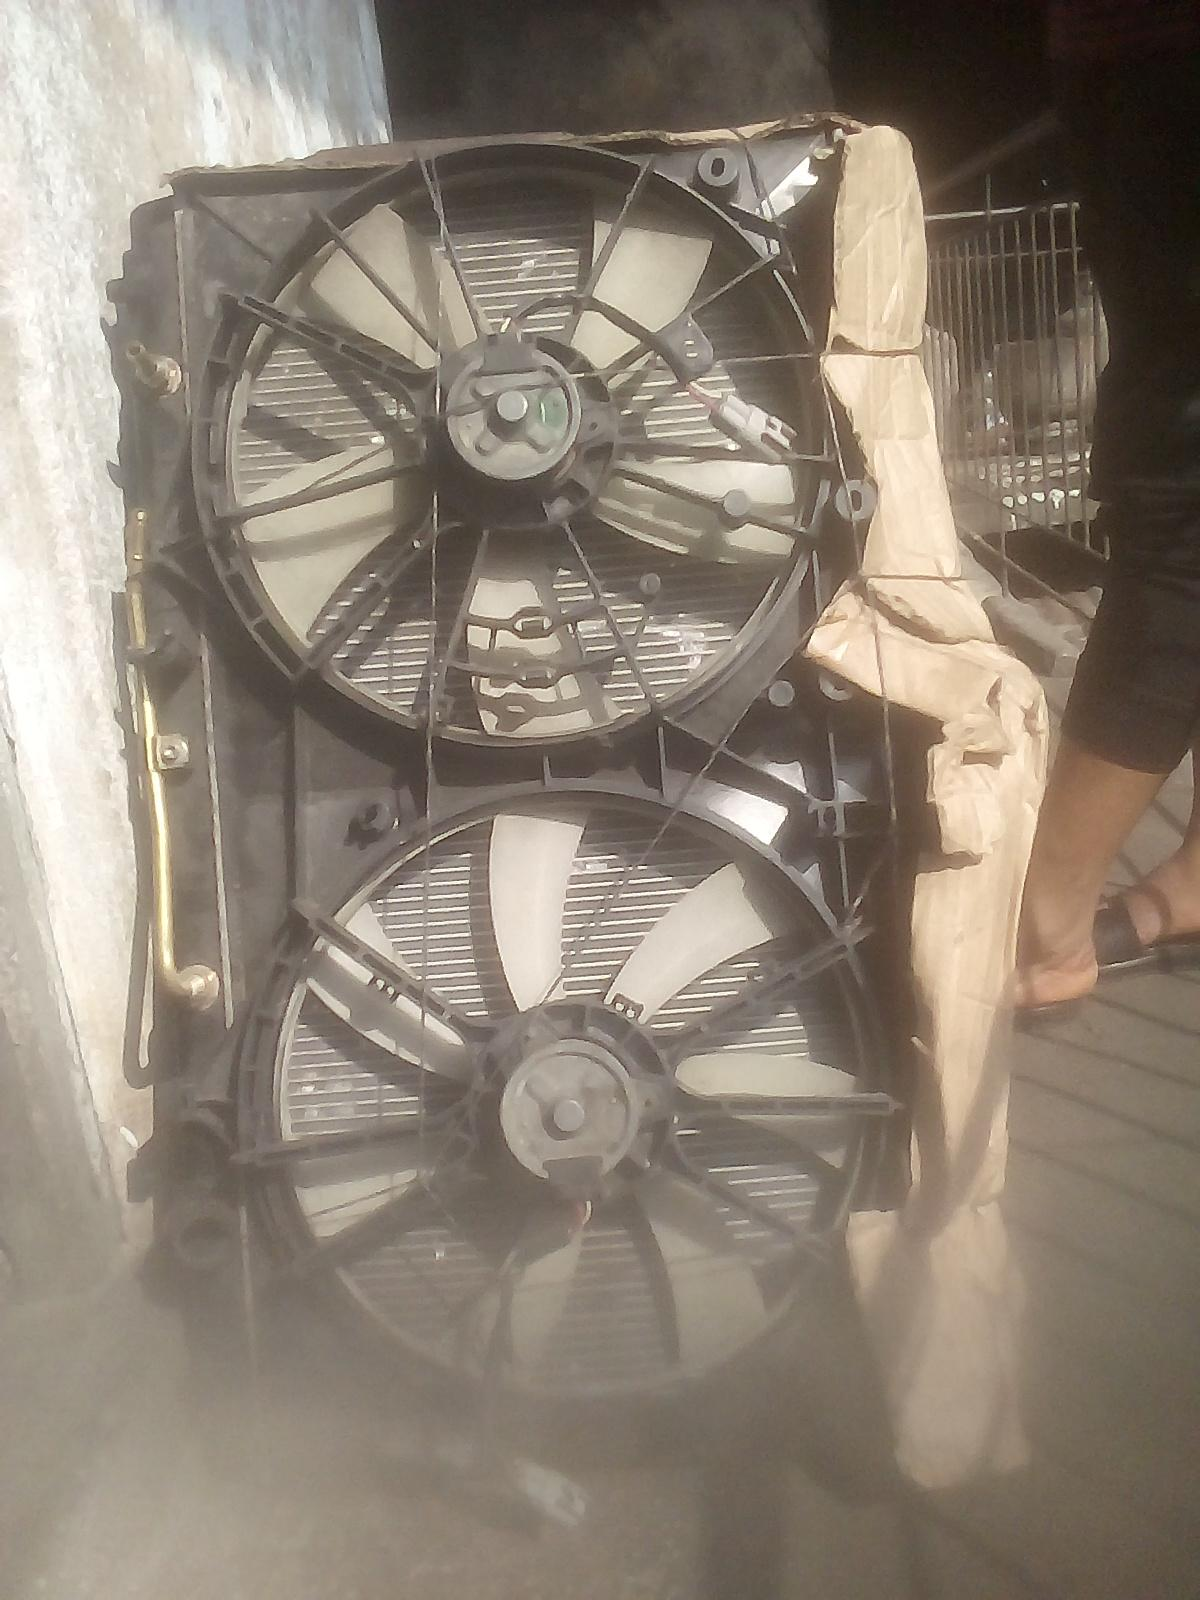 AMERICAN USED CLEAN RADIATOR FAN